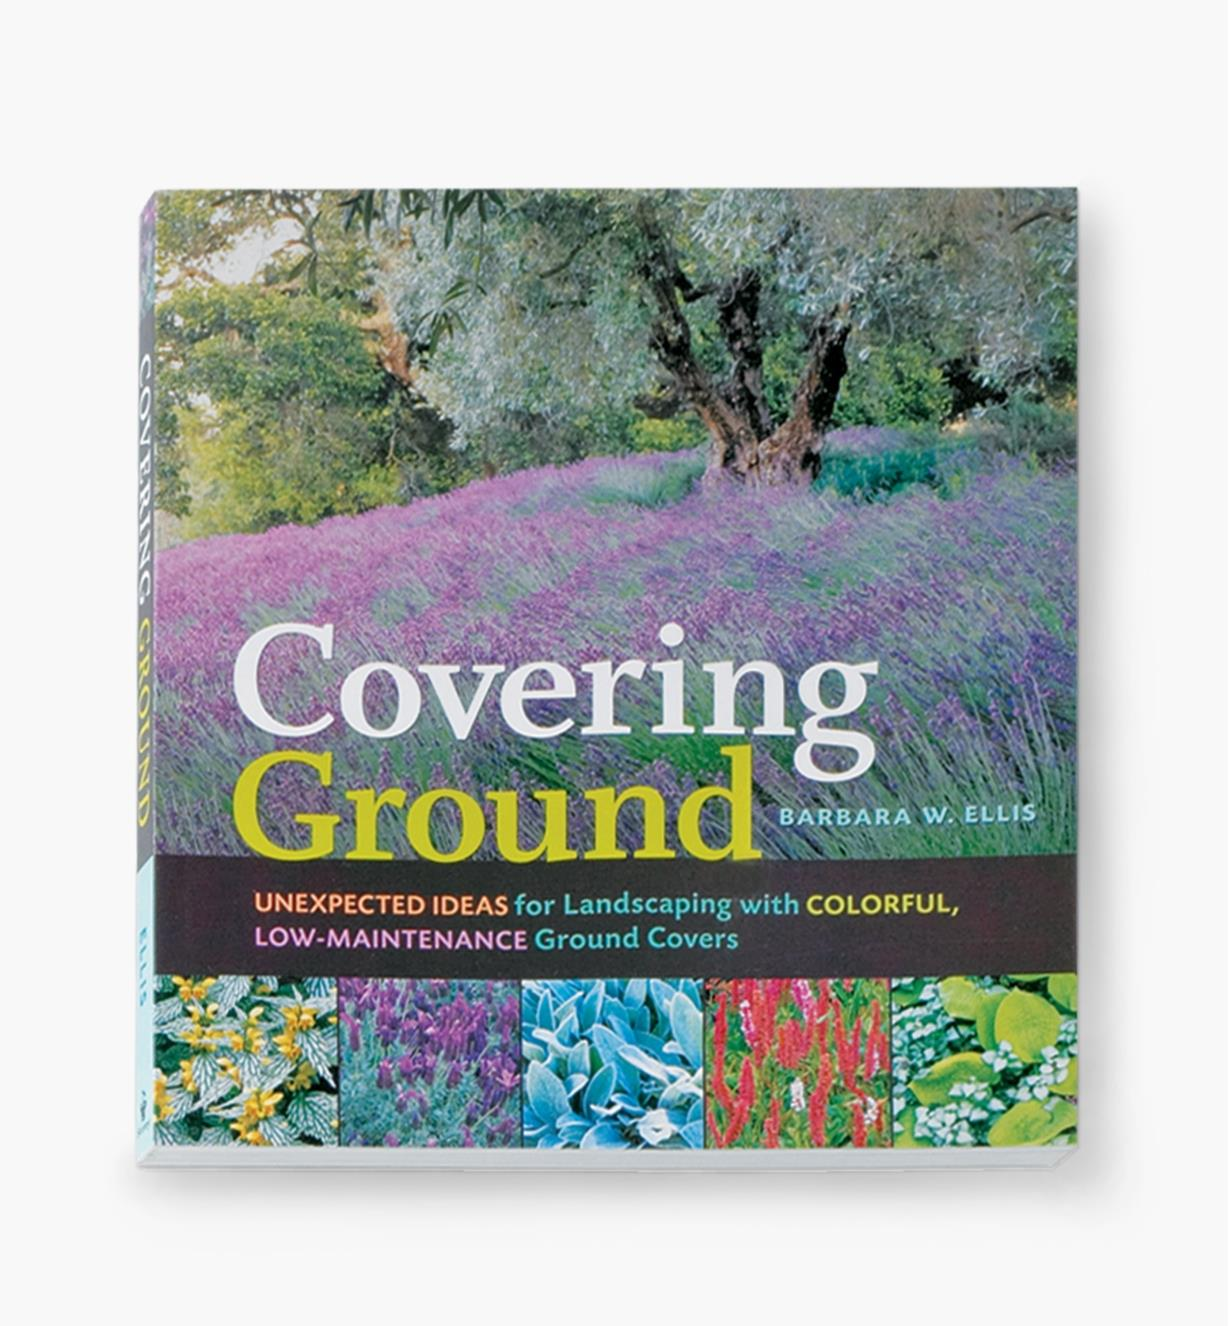 LA651 - Covering Ground